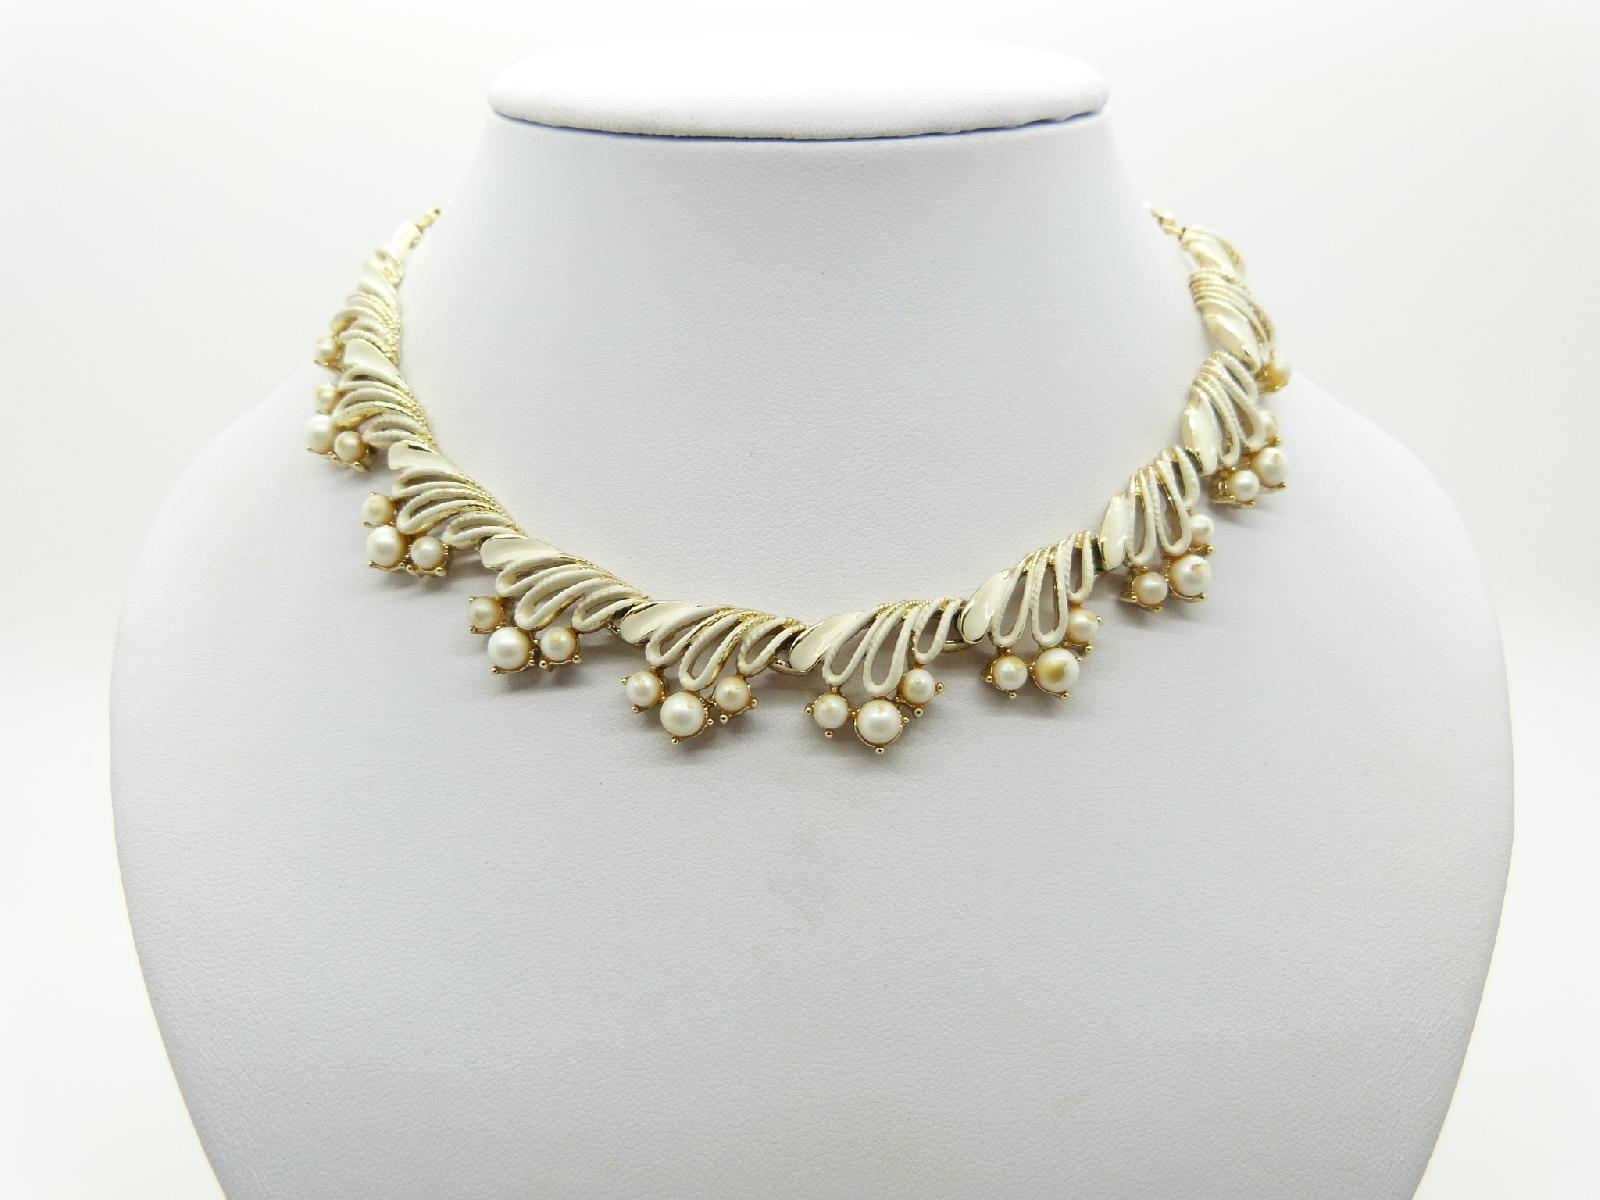 £20.00 - Vintage 50s Unsigned Jewelcraft Cream Enamel and Faul Pearl Goldtone Necklace 41cms Quality!s